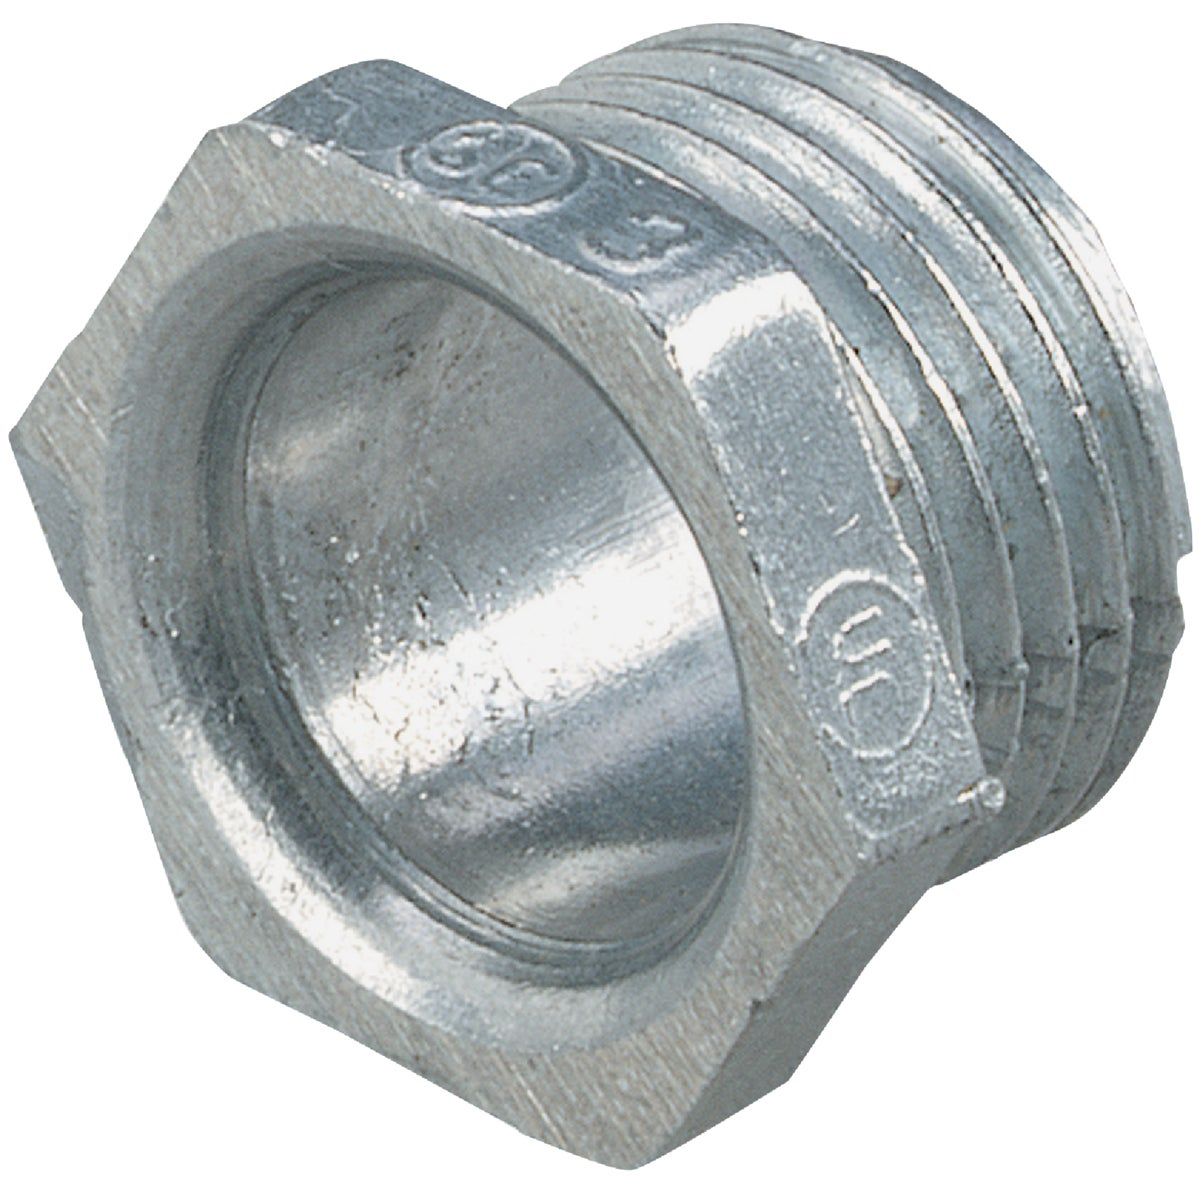 "3/4"" CONDUIT NIPPLE - HA2021 by Thomas & Betts"